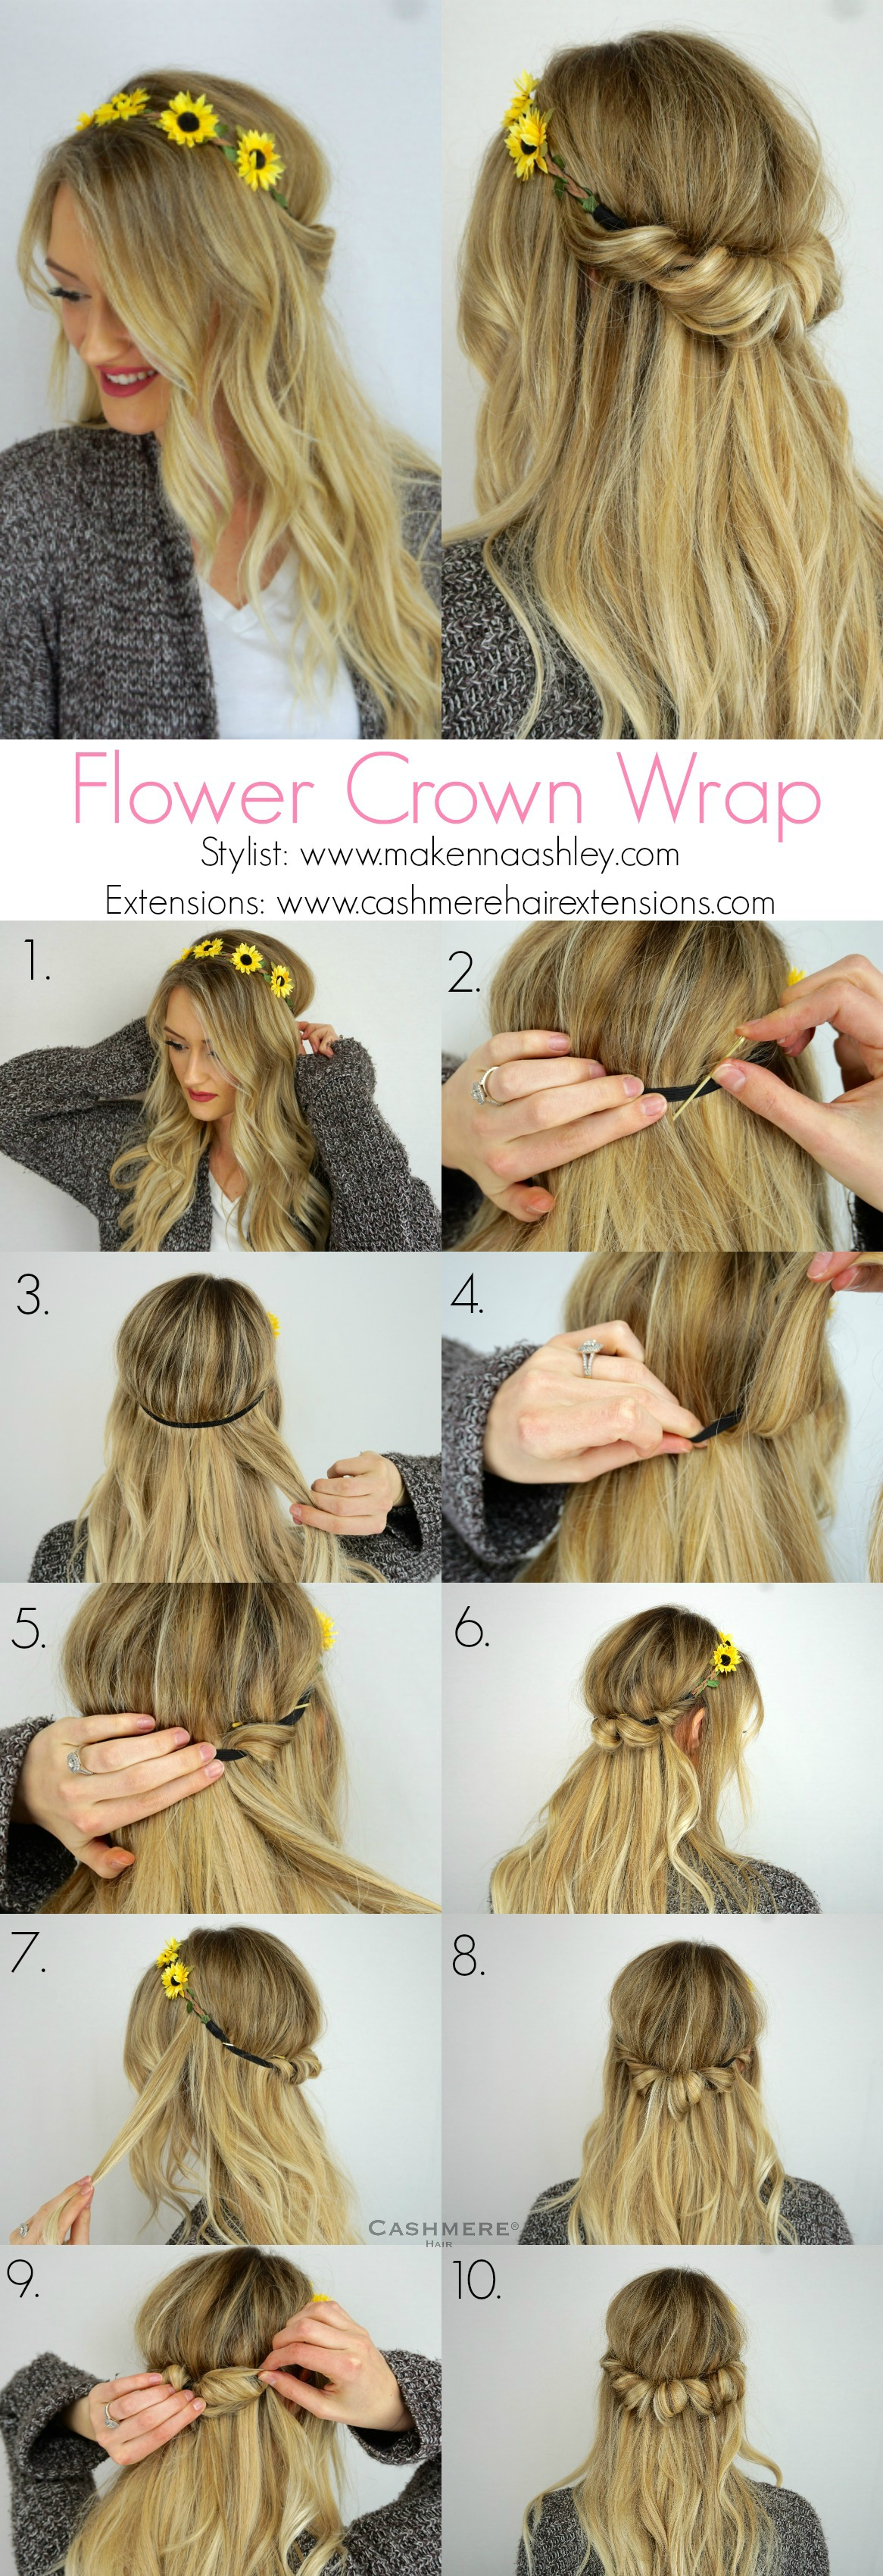 Spring Hair Tutorial With Flower Crown